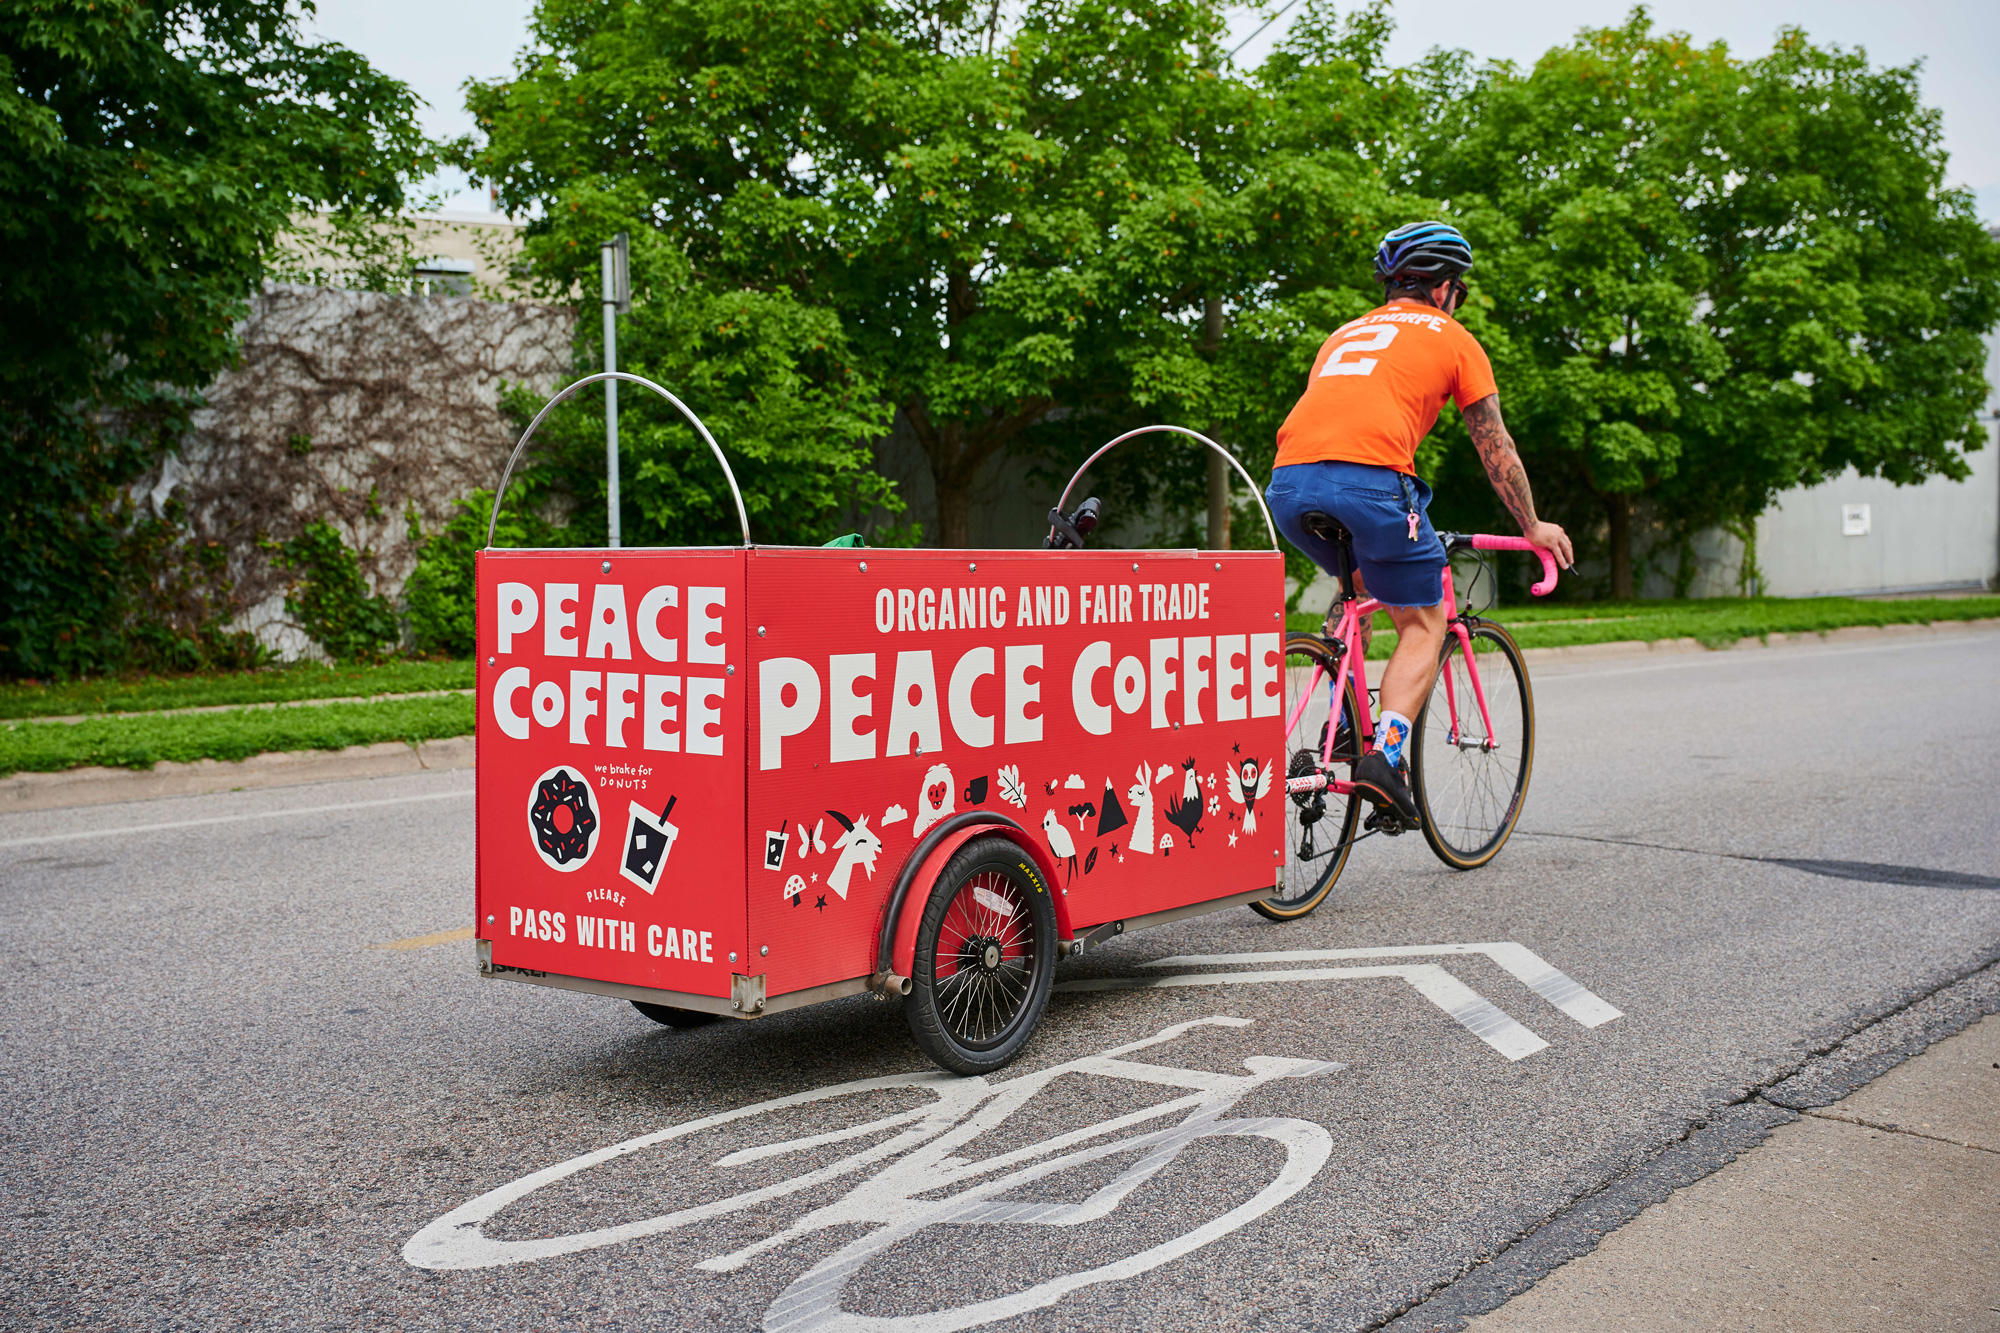 New Logo, Identity, and Packaging for Peace Coffee by Werner Design Werks